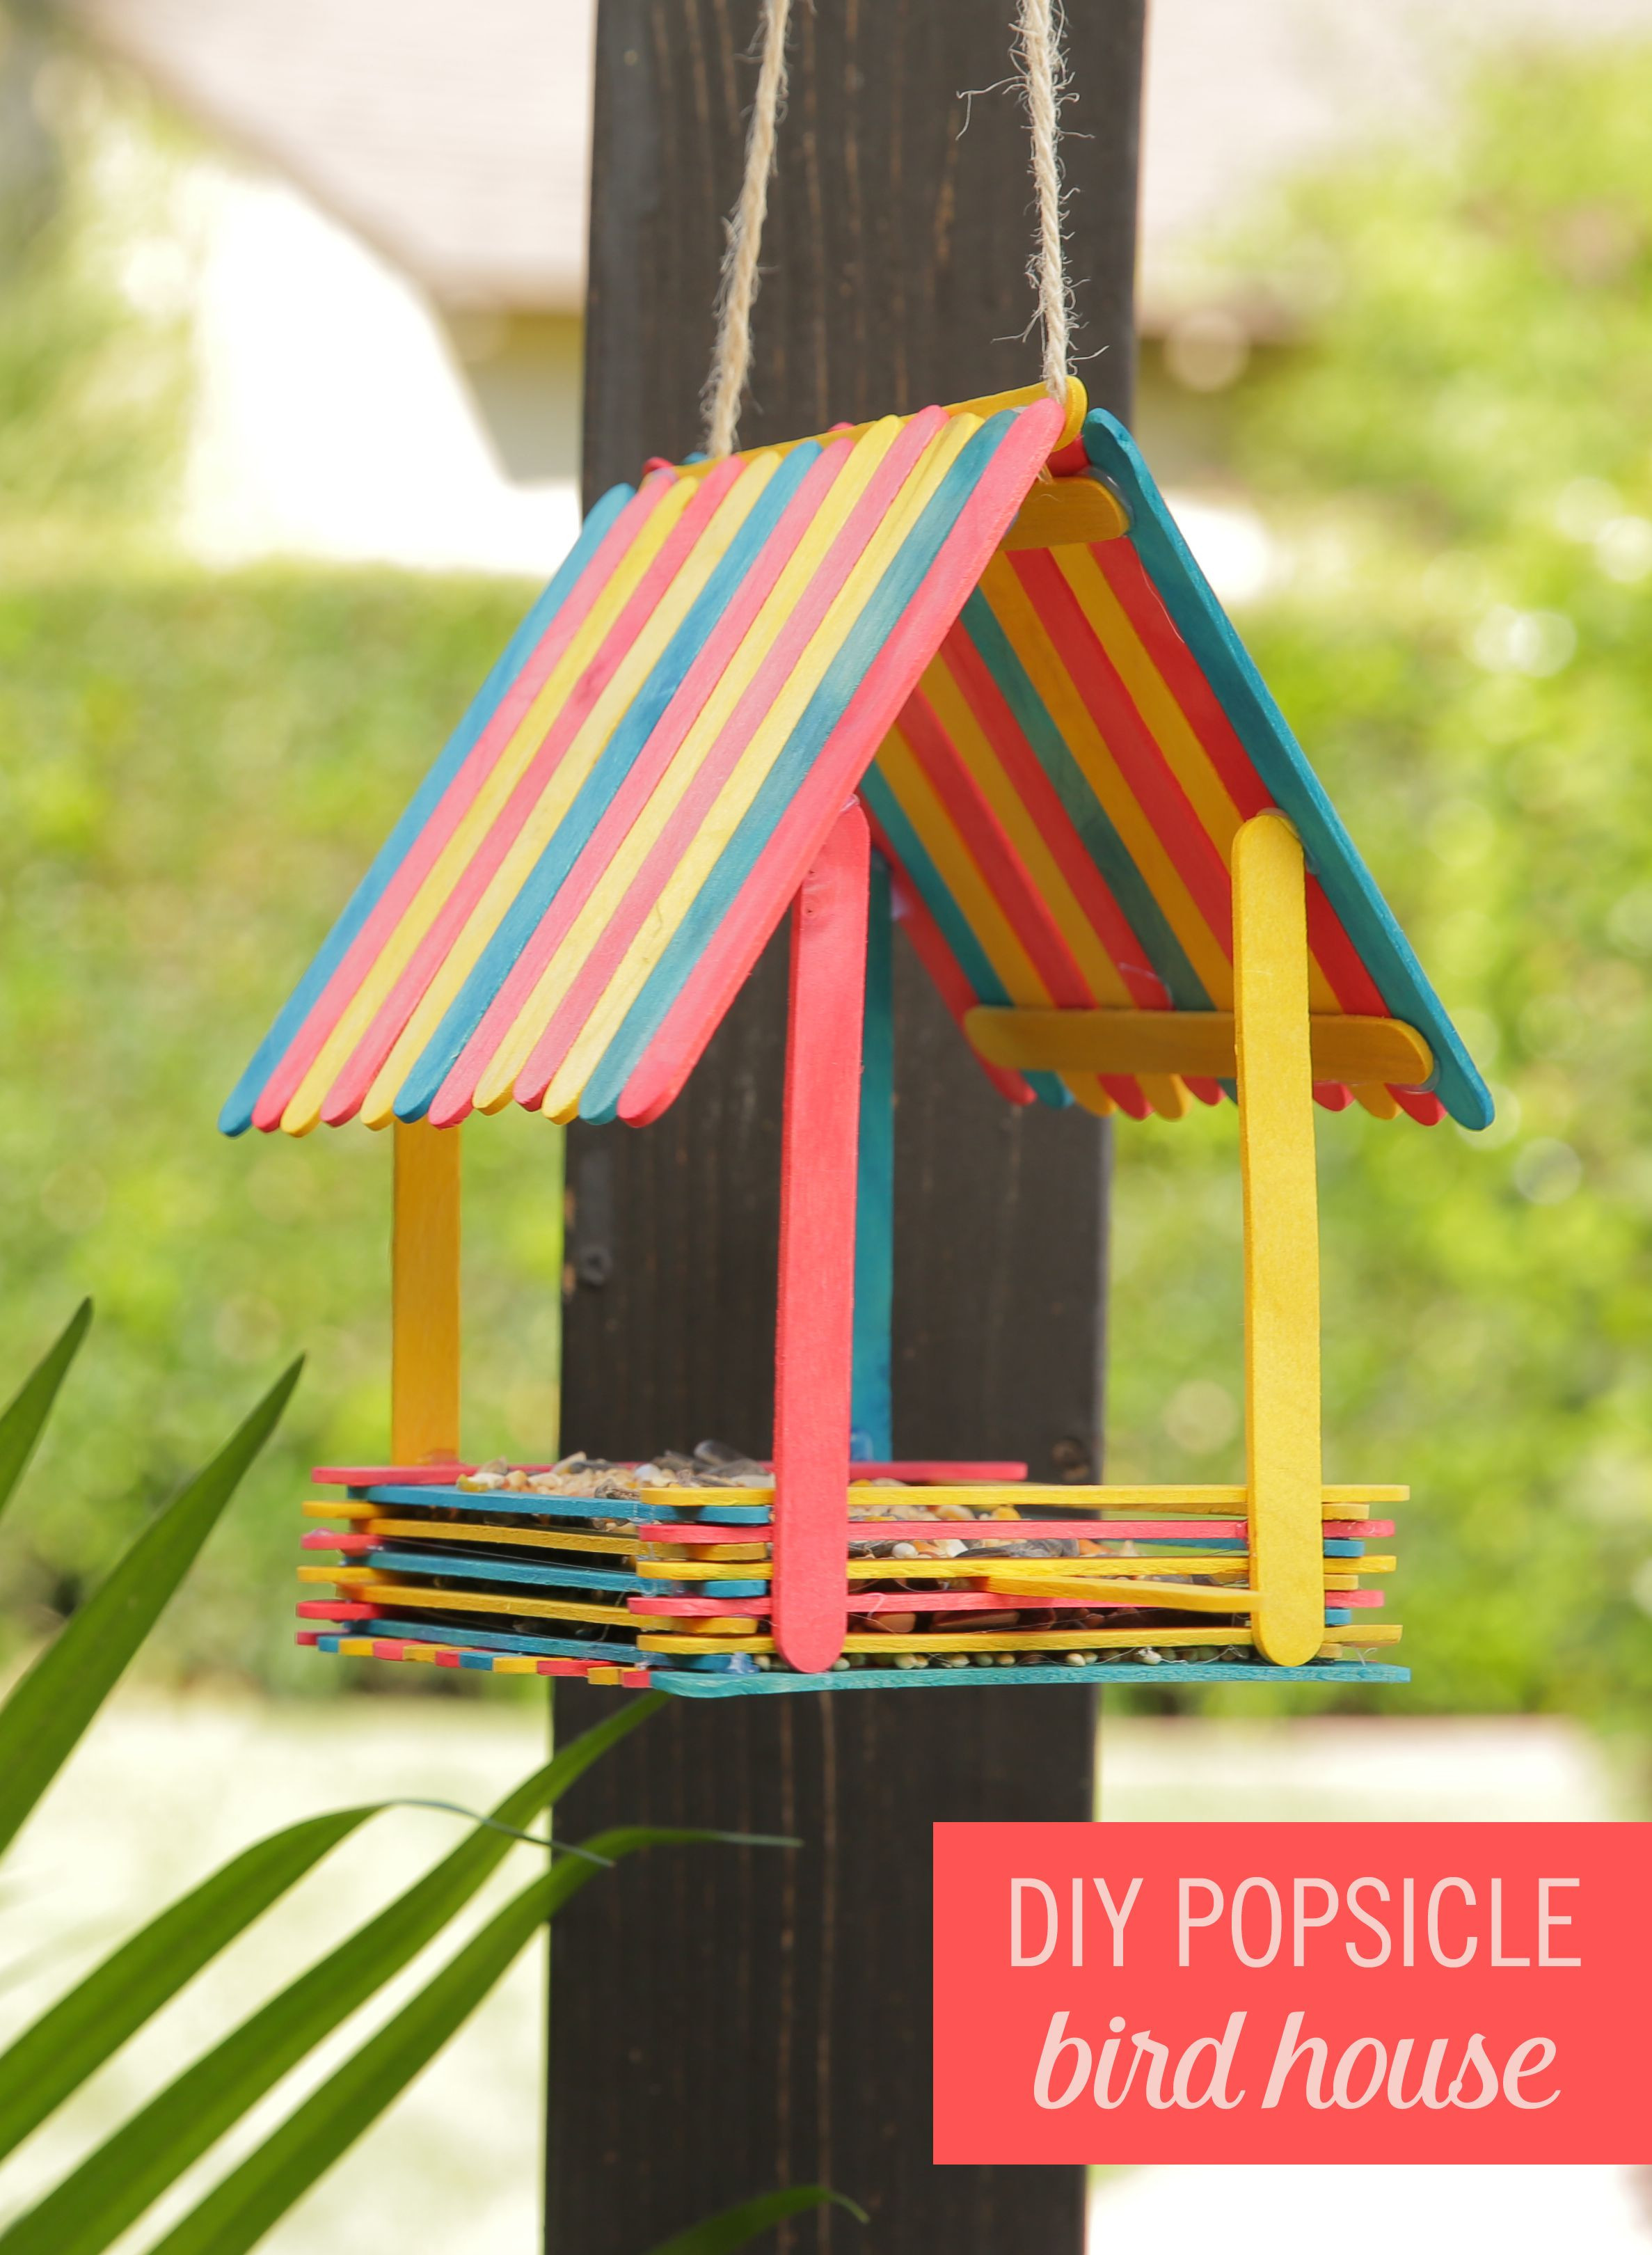 ice cream stick flower vase of turn popsicles into an adorable bird house summer diys and with regard to embrace your inner snow white and bring birds to your backyard with this adorable diy popsicle bird house grab some colorful popsicles hot glue